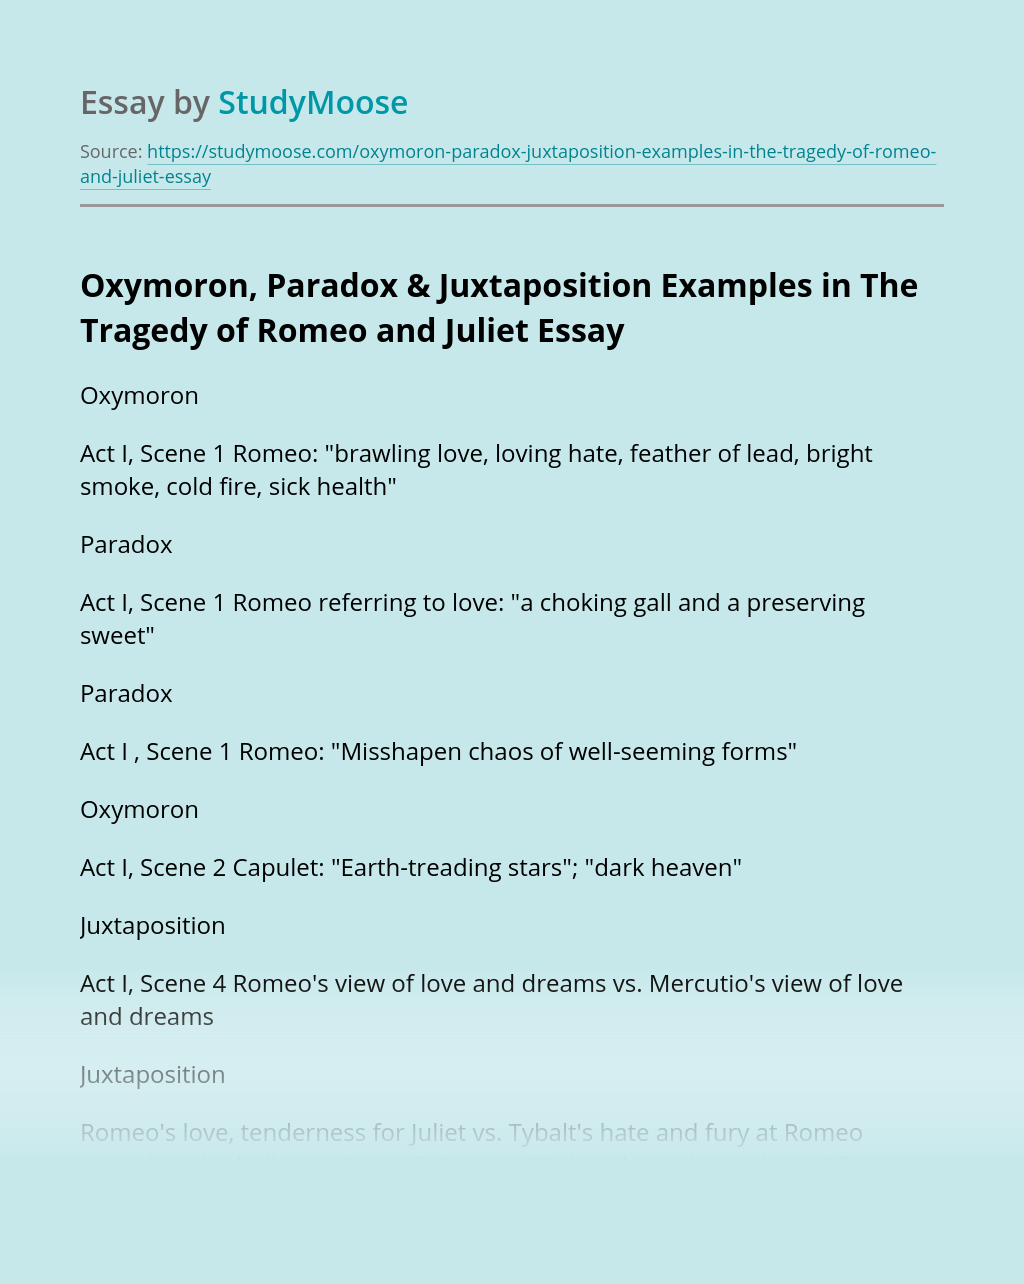 Oxymoron, Paradox & Juxtaposition Examples in The Tragedy of Romeo and Juliet